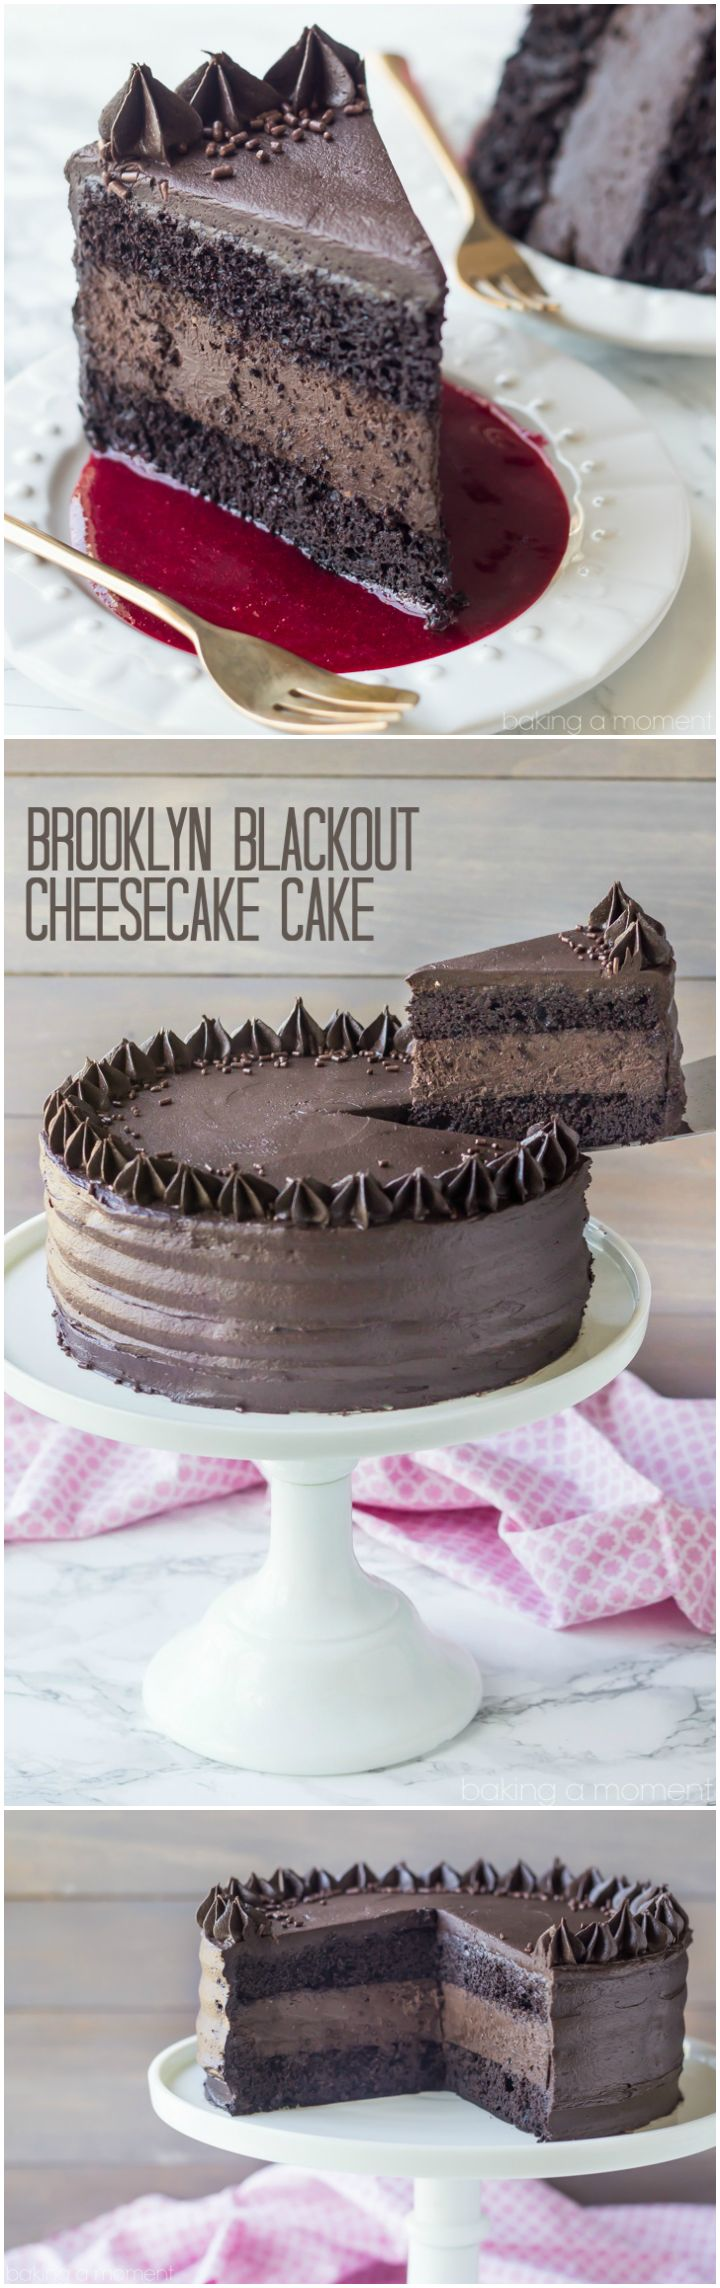 Re-Pin By @siliconem - Brooklyn Blackout Cheesecake Cake | Baking a Moment